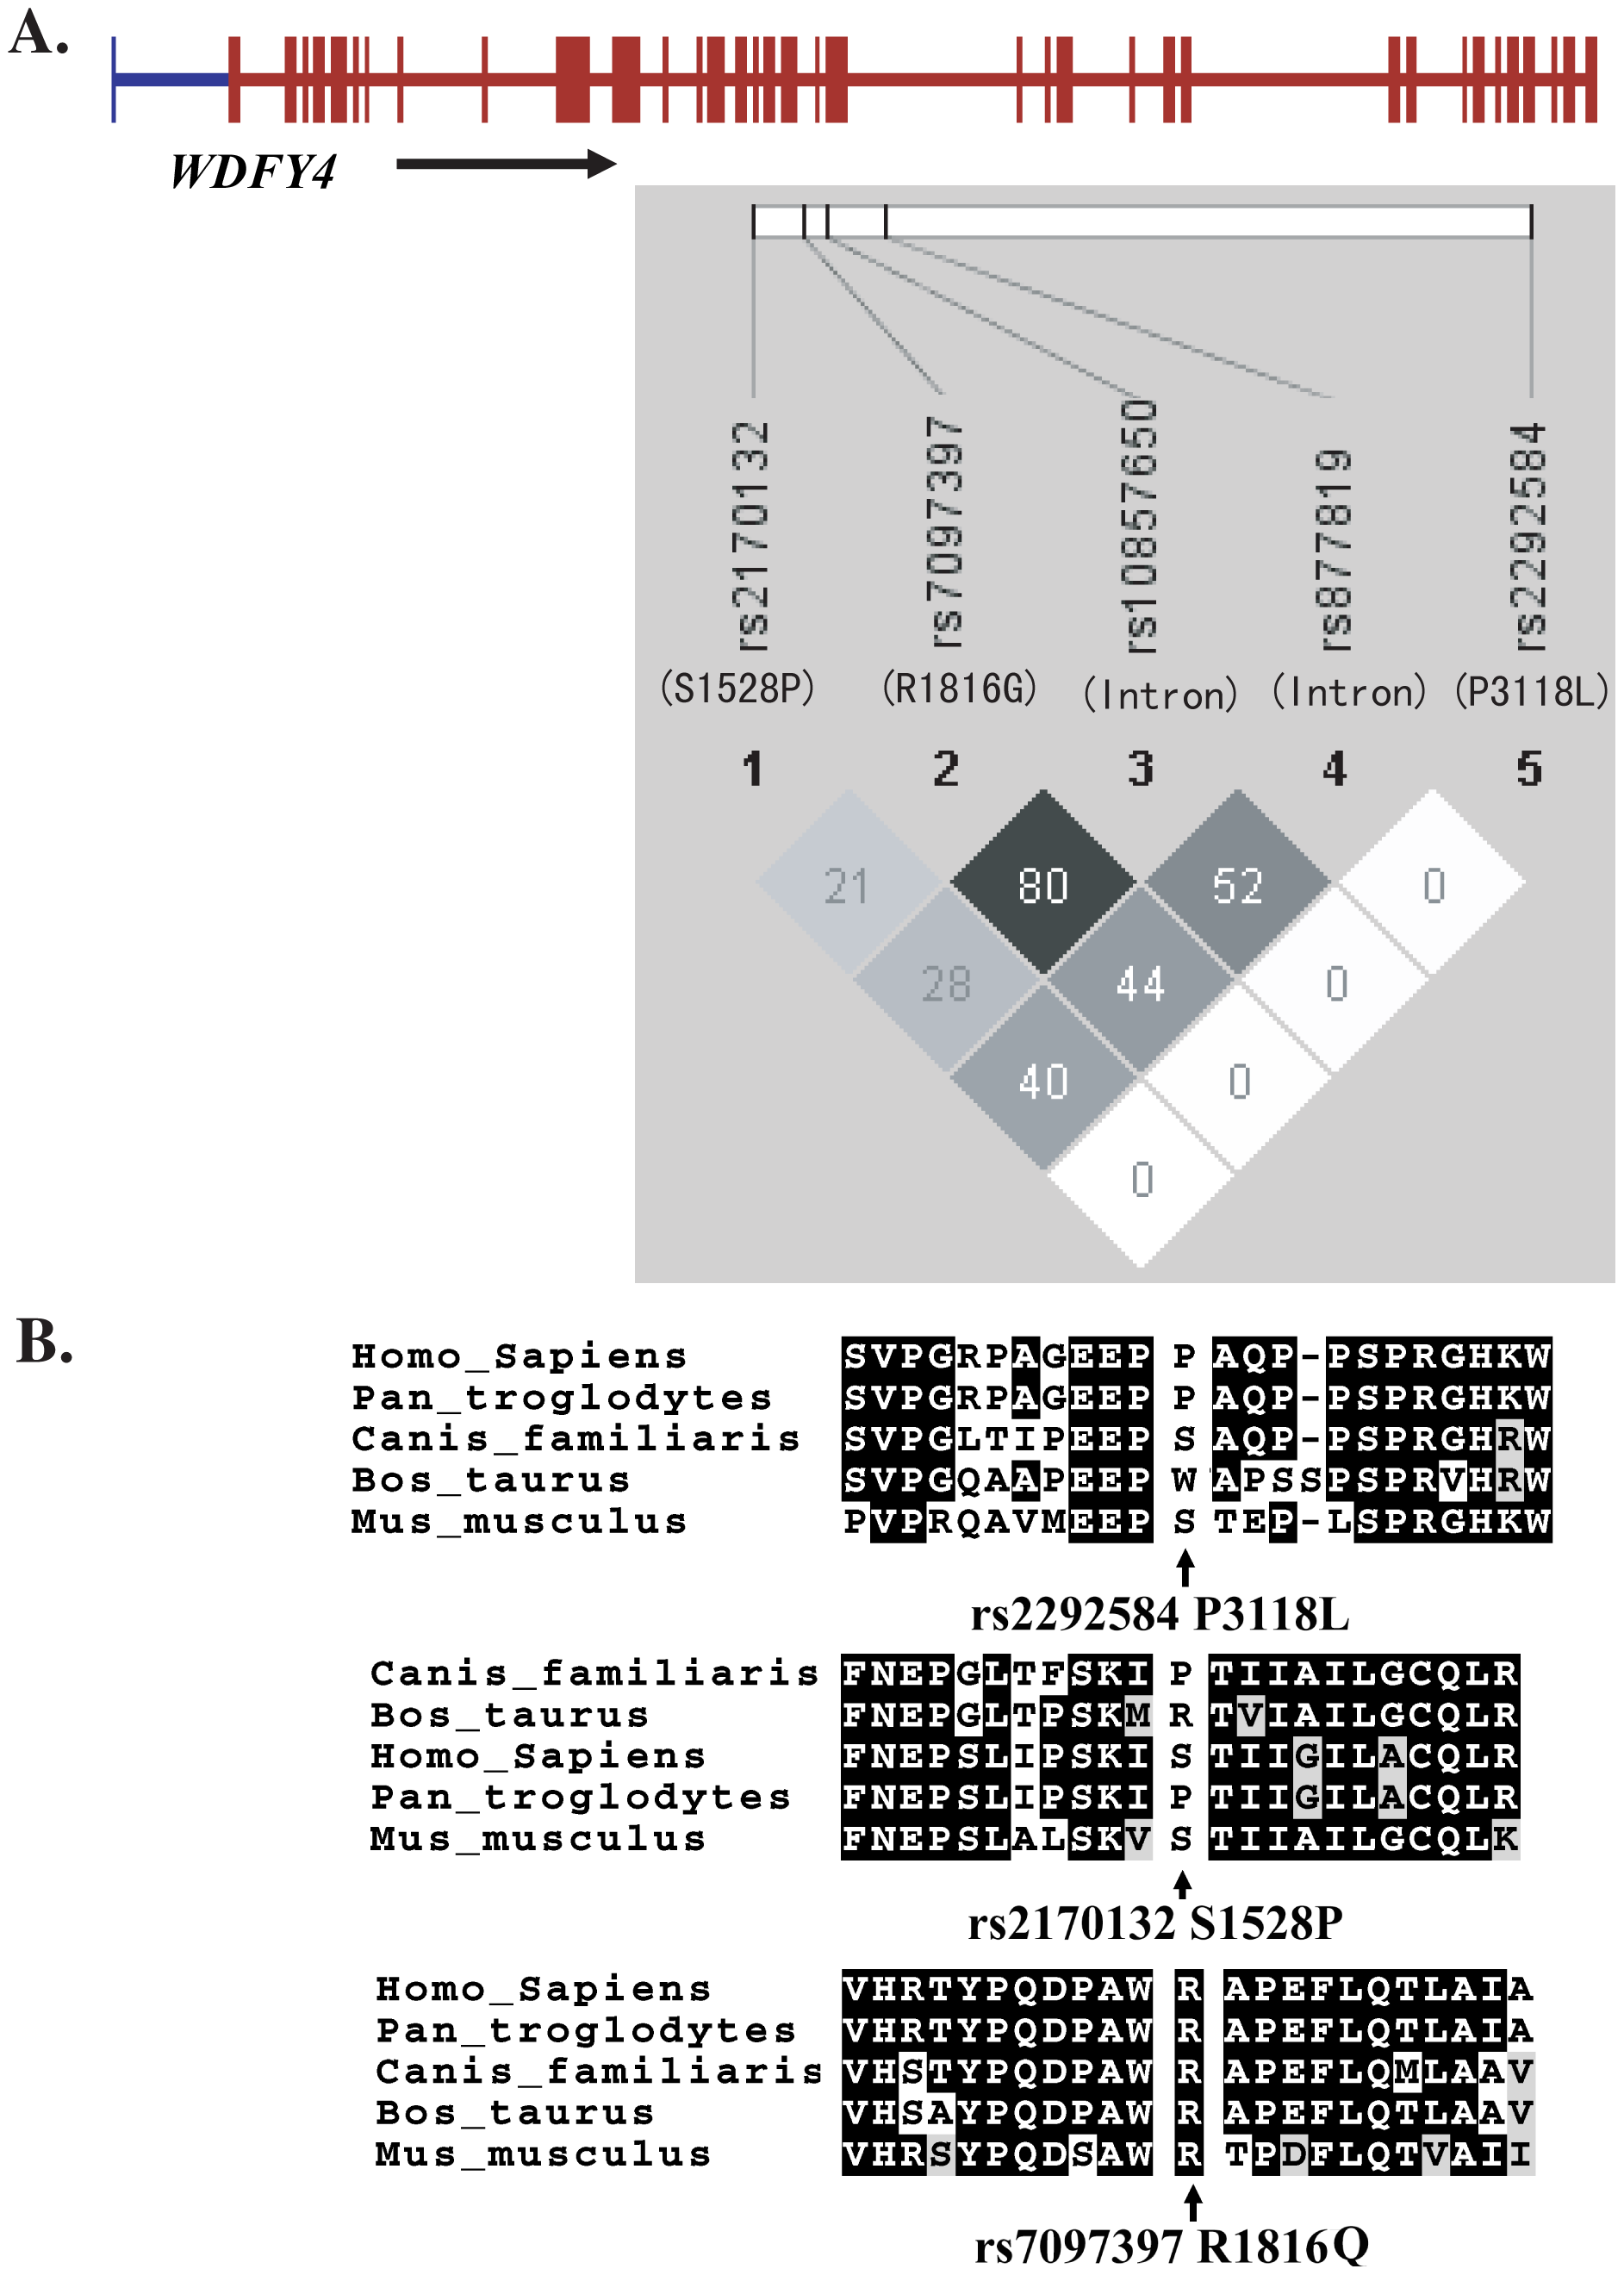 LD among <i>WDFY4</i> SNPs examined in this study (A) and sequence conservation of the three nonsynonymous variations among various species (B).